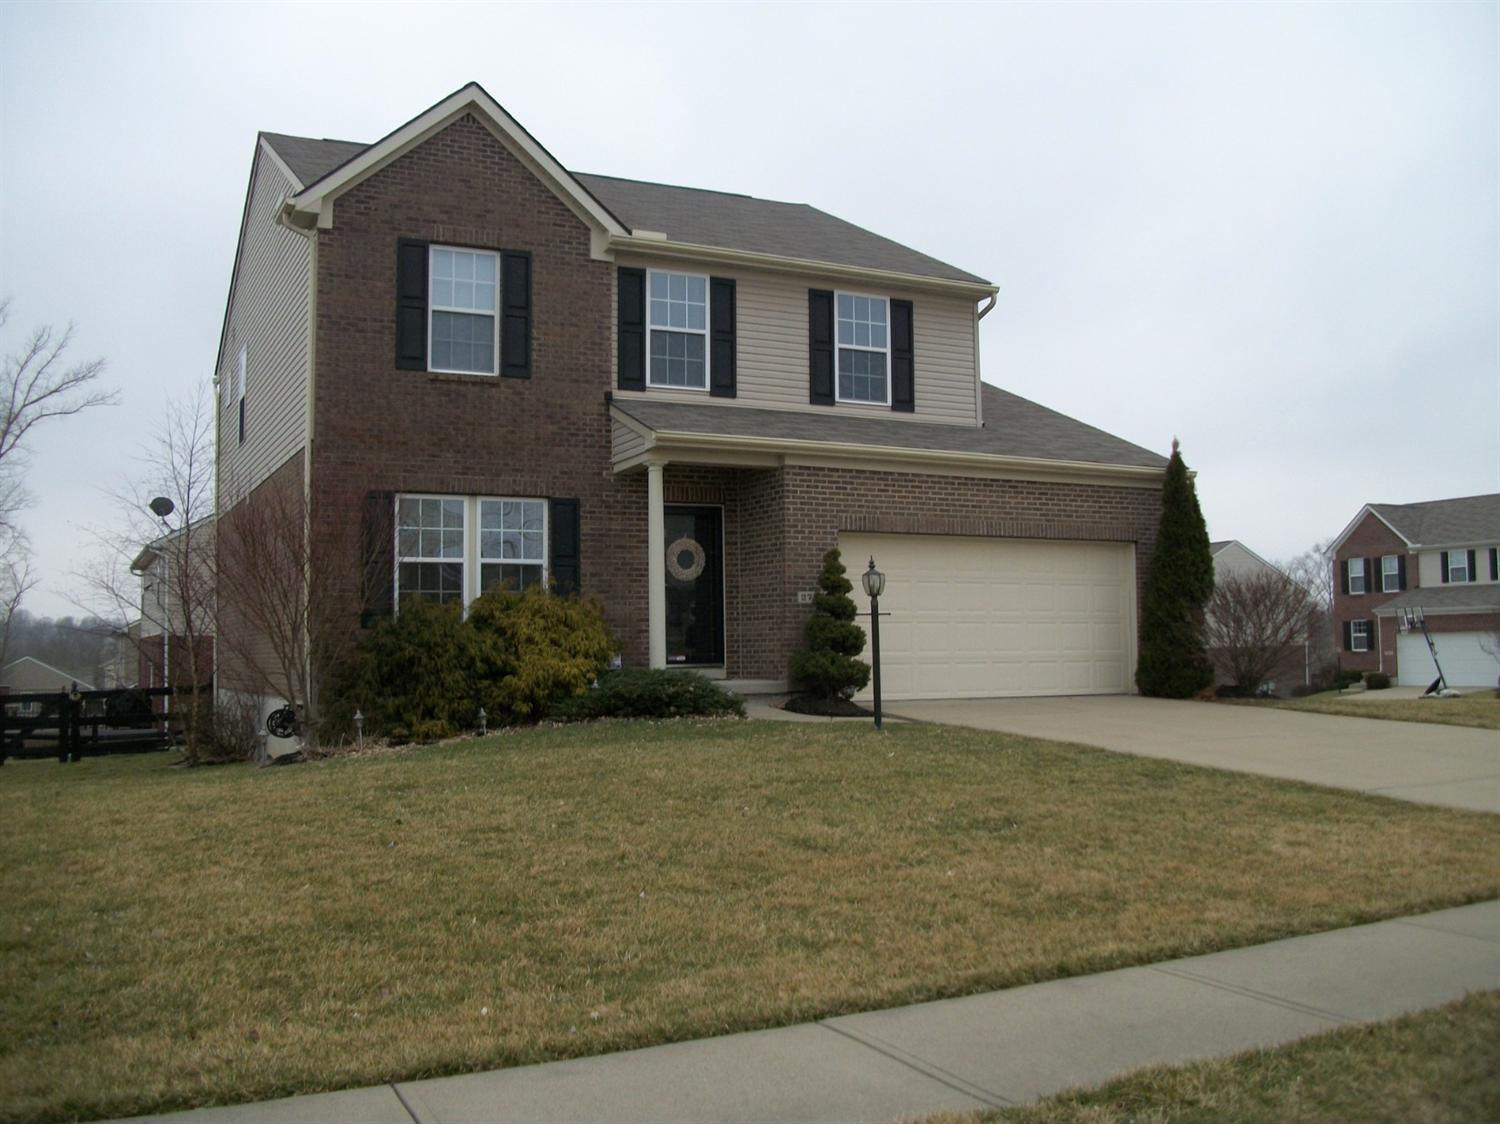 Photo 1 for 2794 Parker Ridge Dr Independence, KY 41051